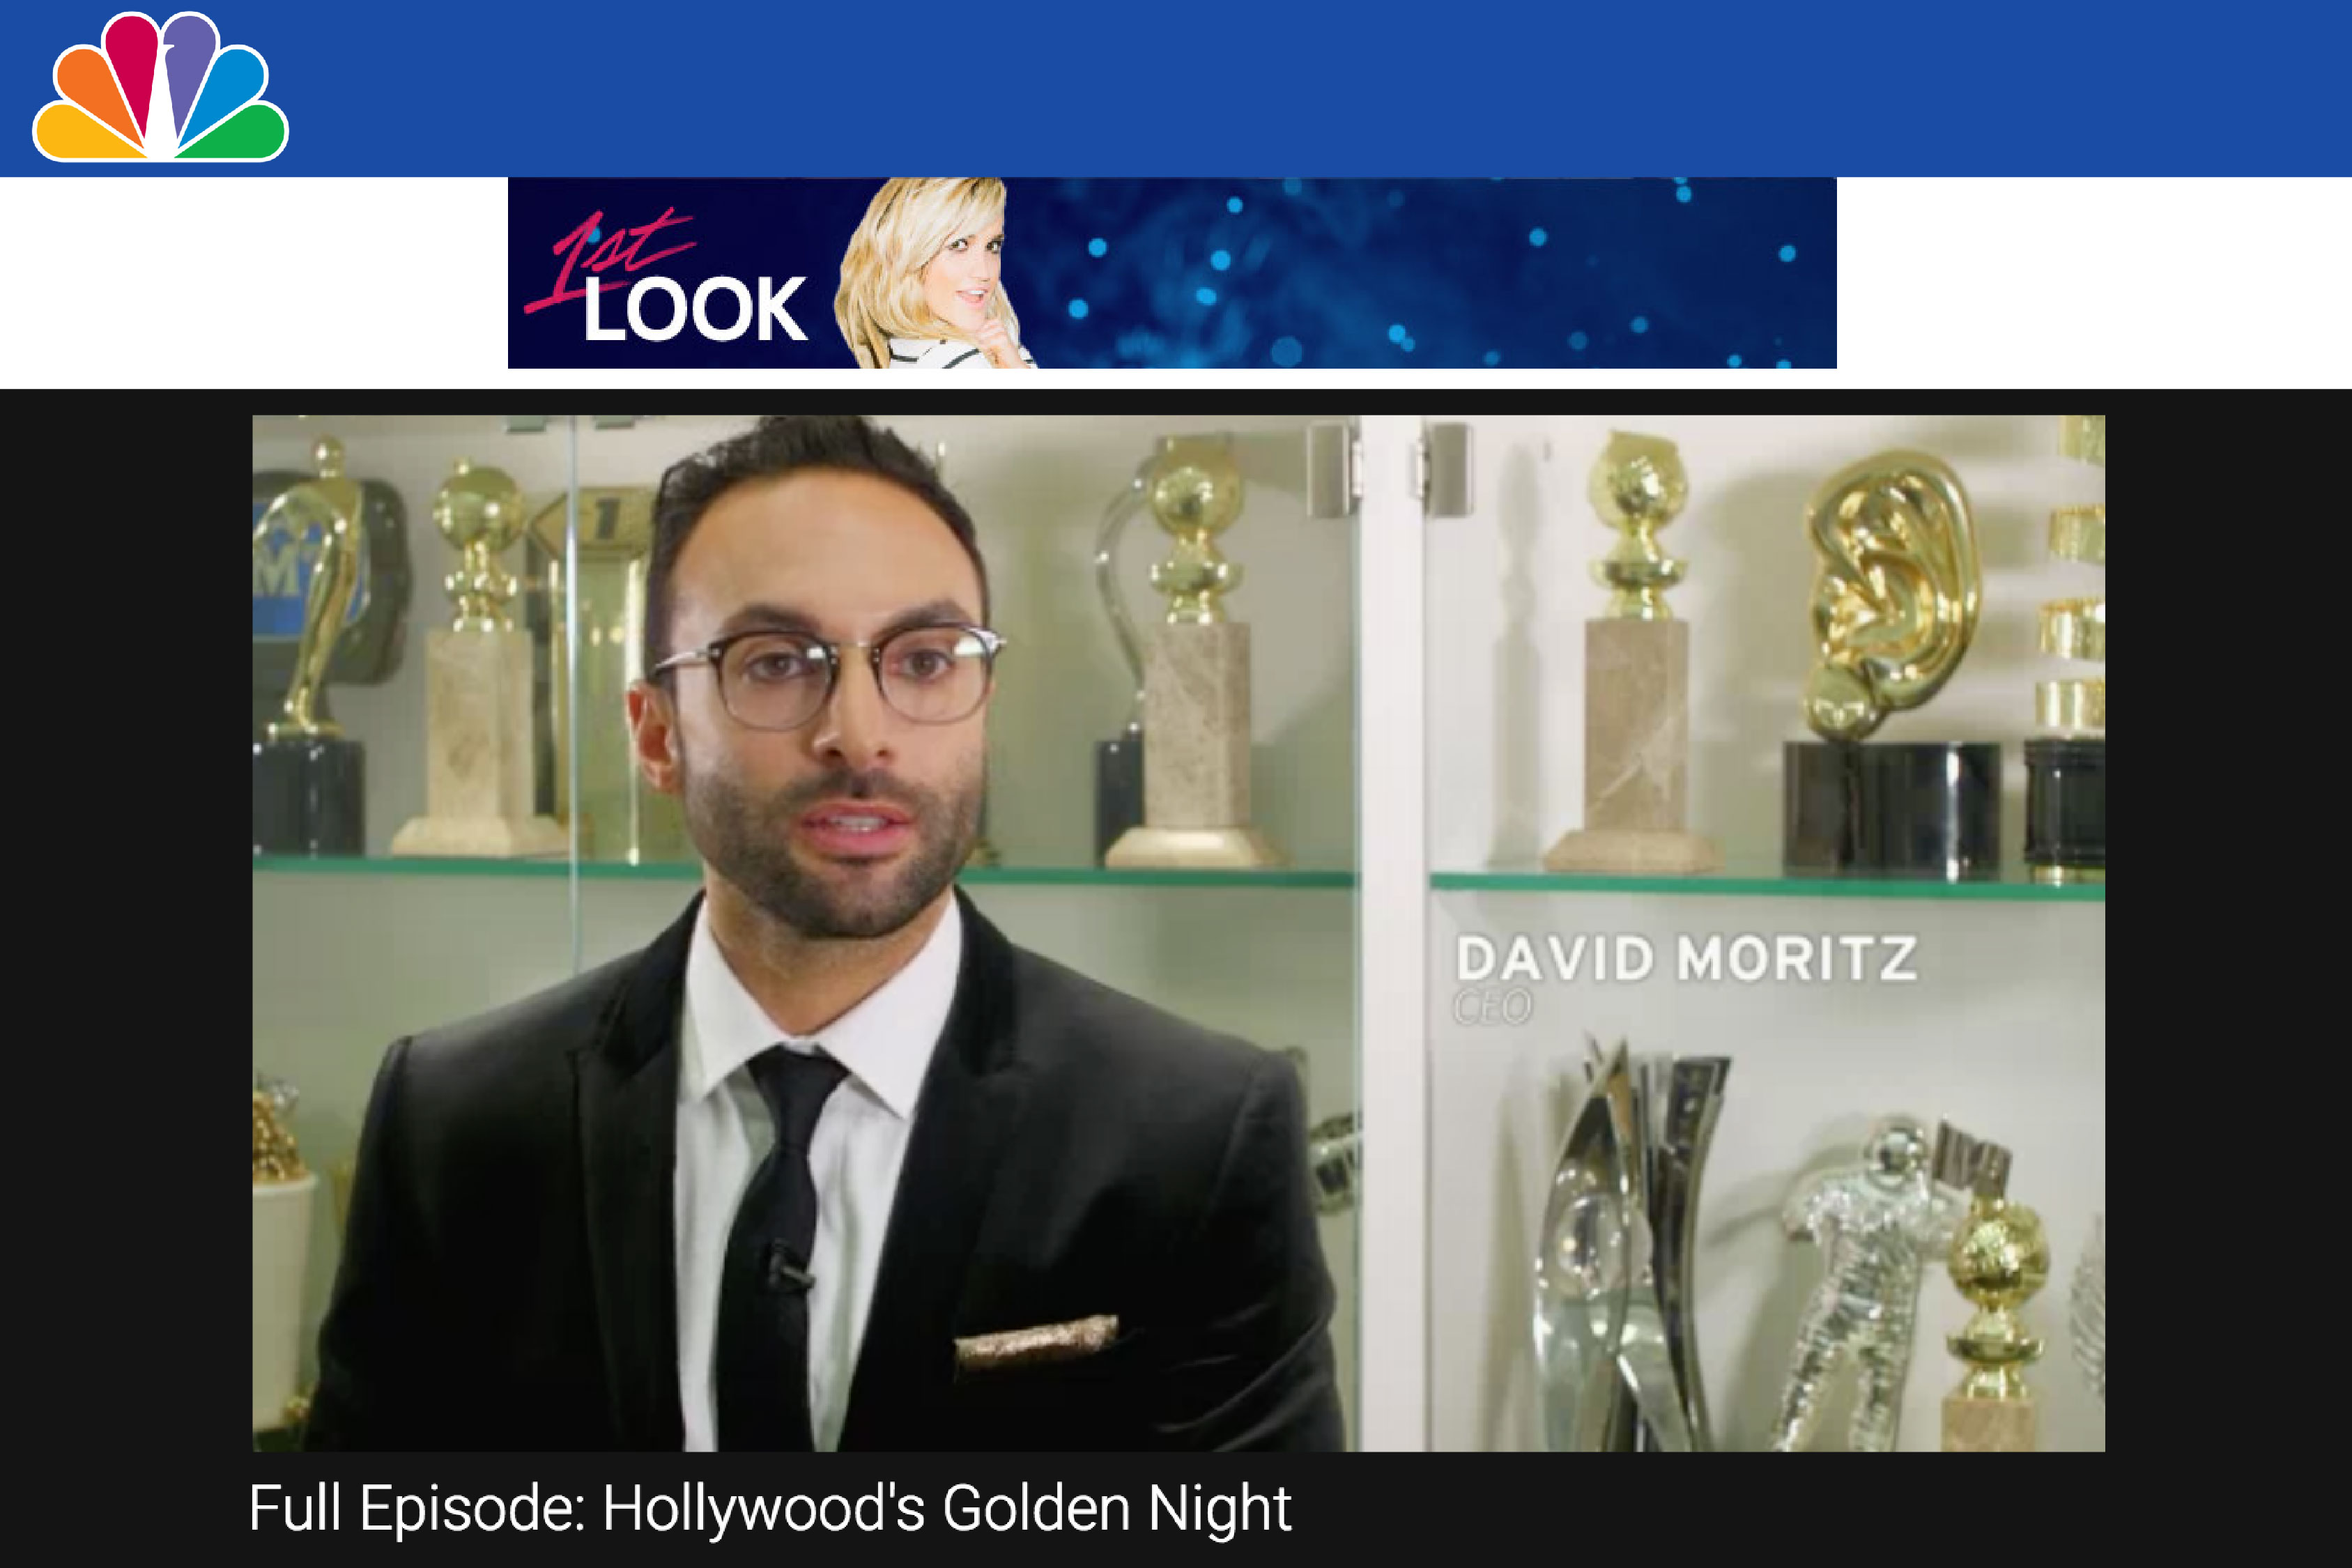 NBC's 1st Look Explores How Society Awards Creates the Golden Globe Statuette